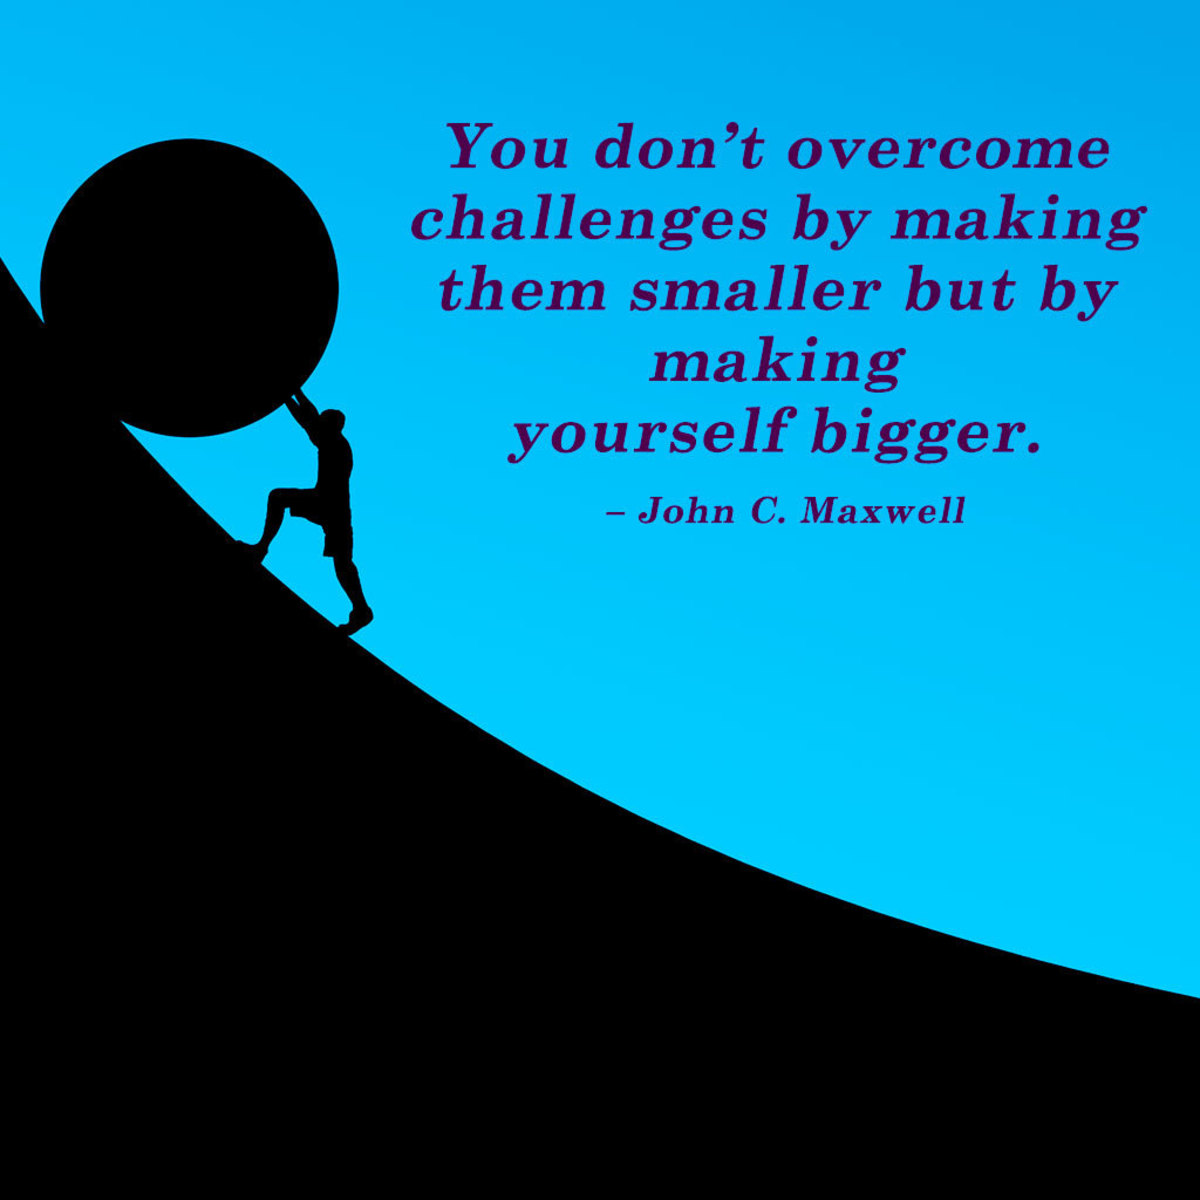 """""""You don't overcome challenges by making them smaller but by making yourself bigger."""" – John C. Maxwell"""